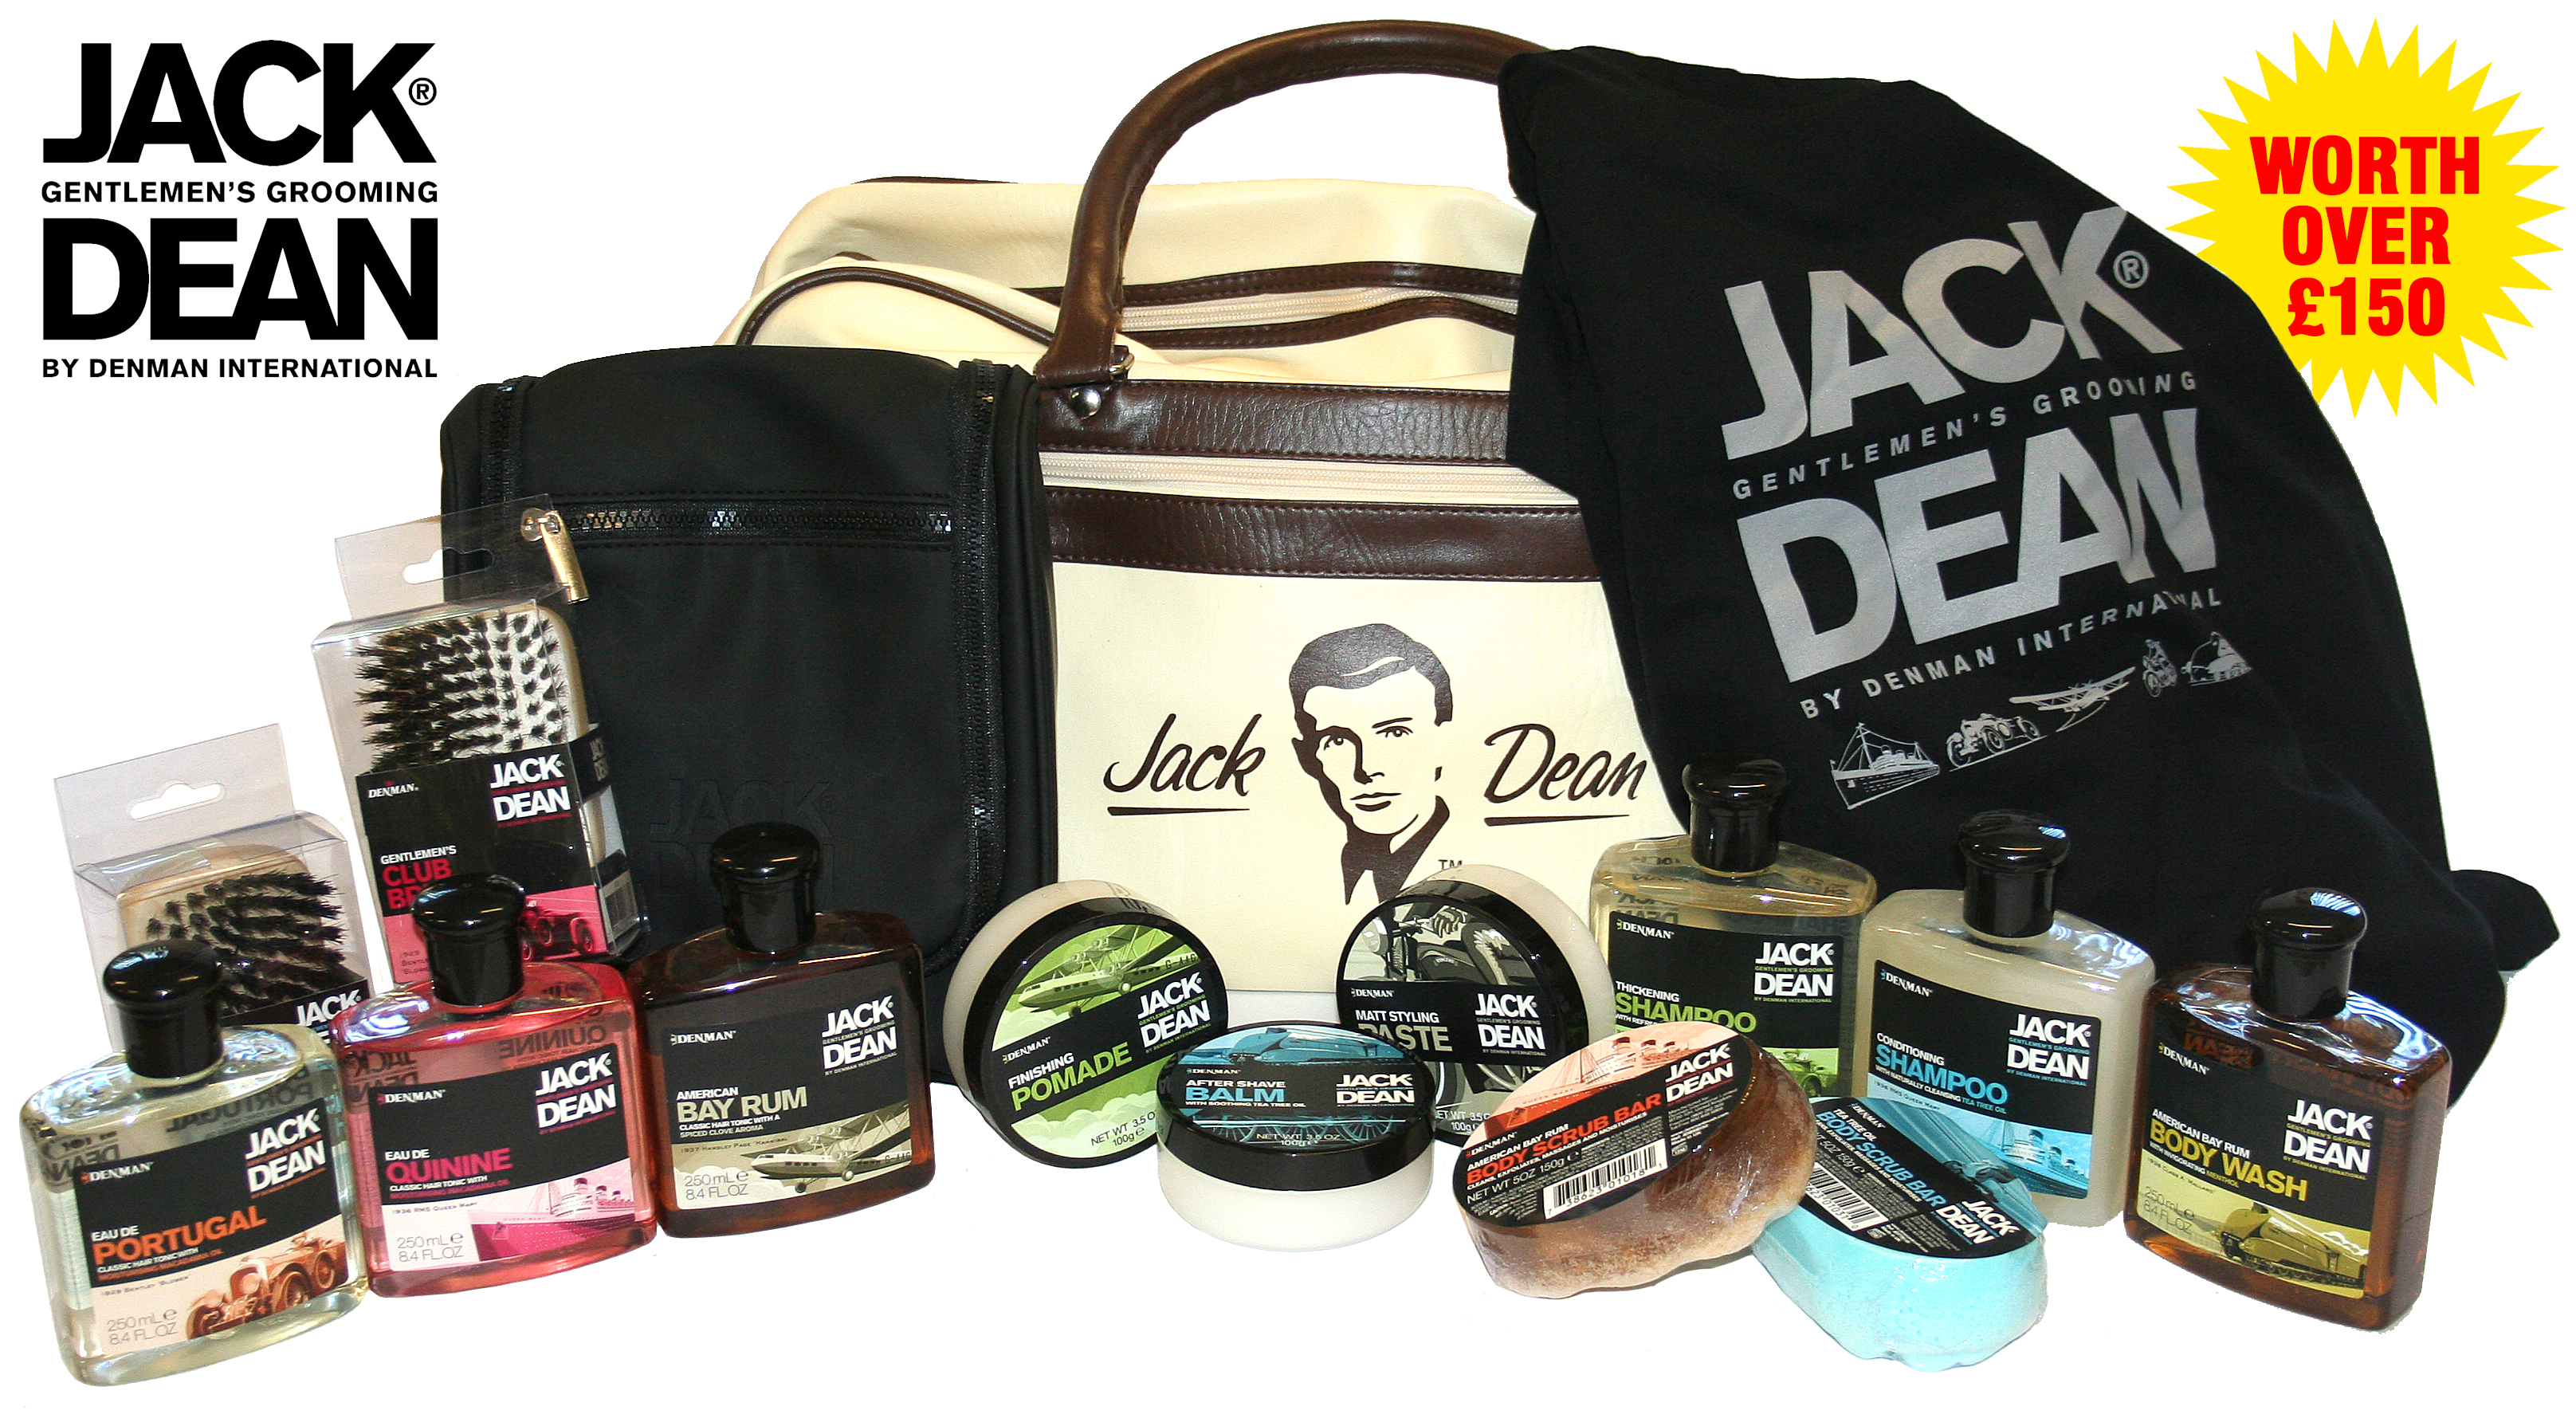 Win the Jack Dean Male Grooming Range worth over £150